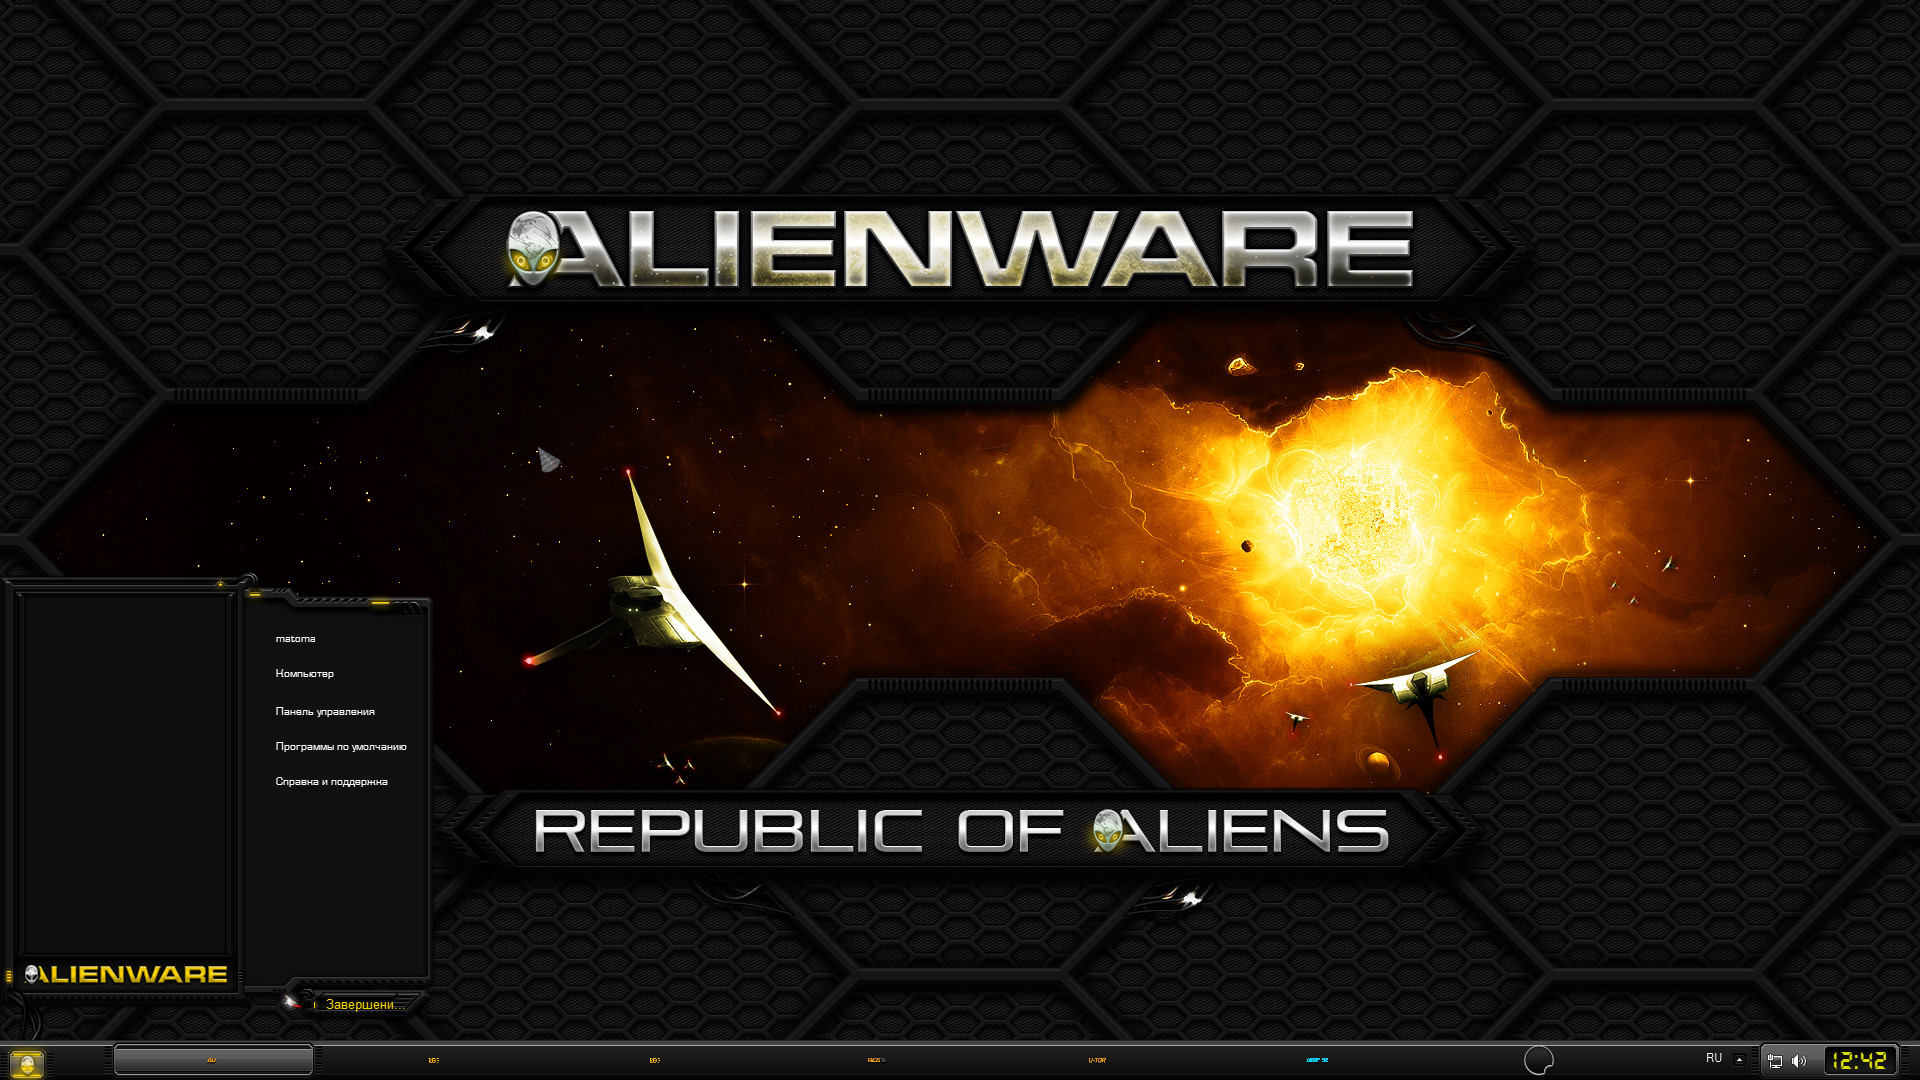 Alienware HQ GOLD Windows 7 Theme by Designfjotten